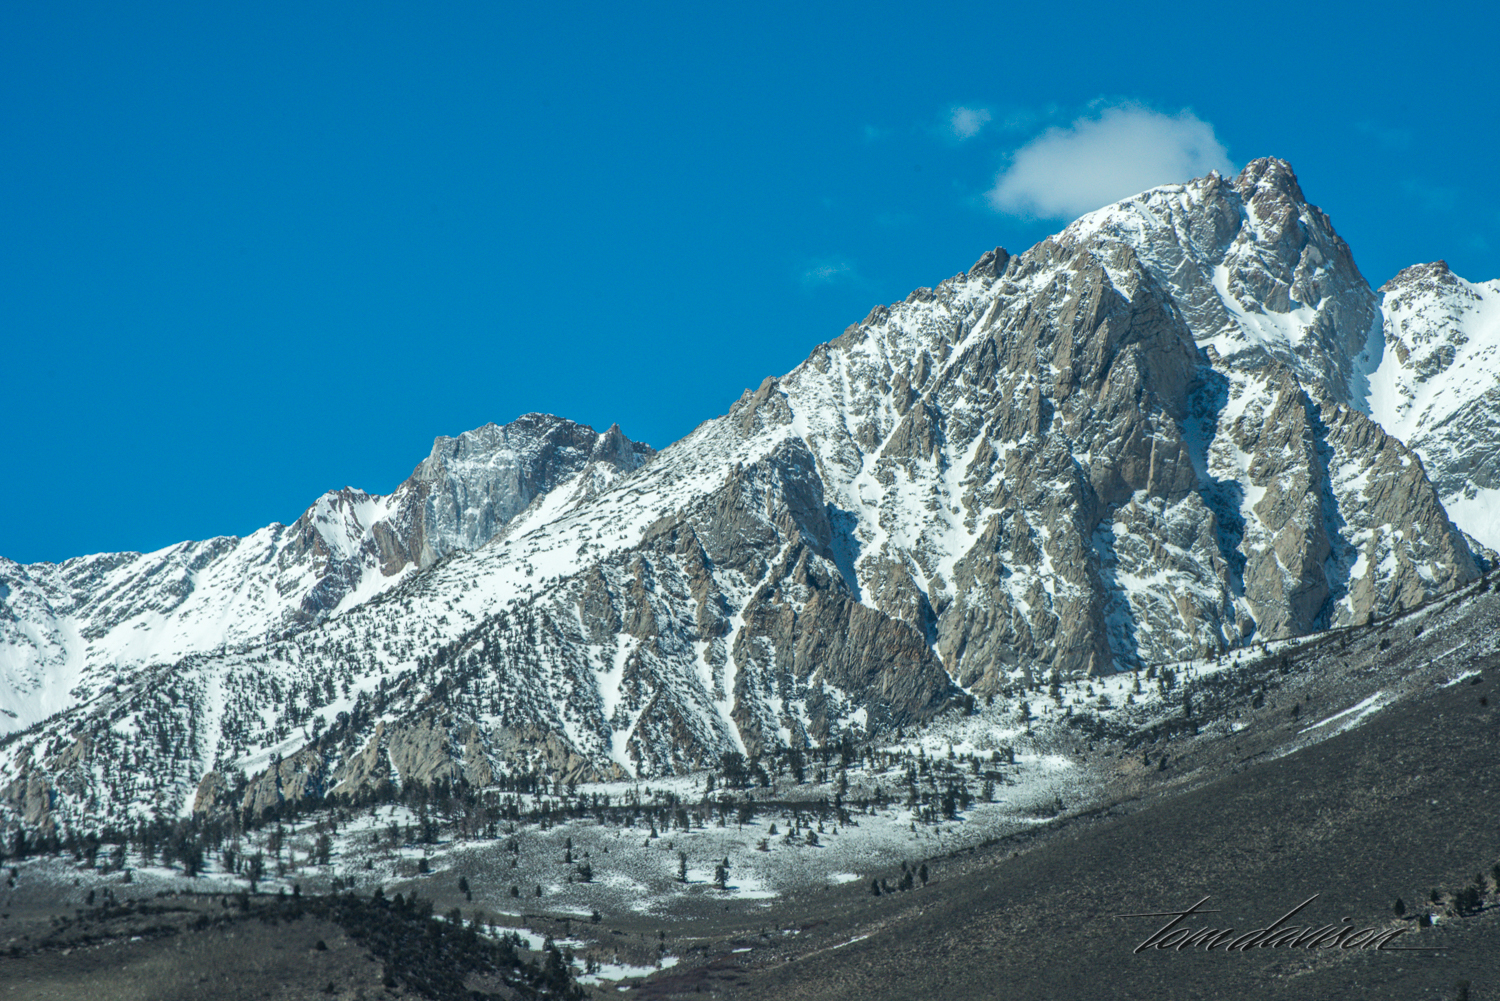 Buttermilk-14.jpg